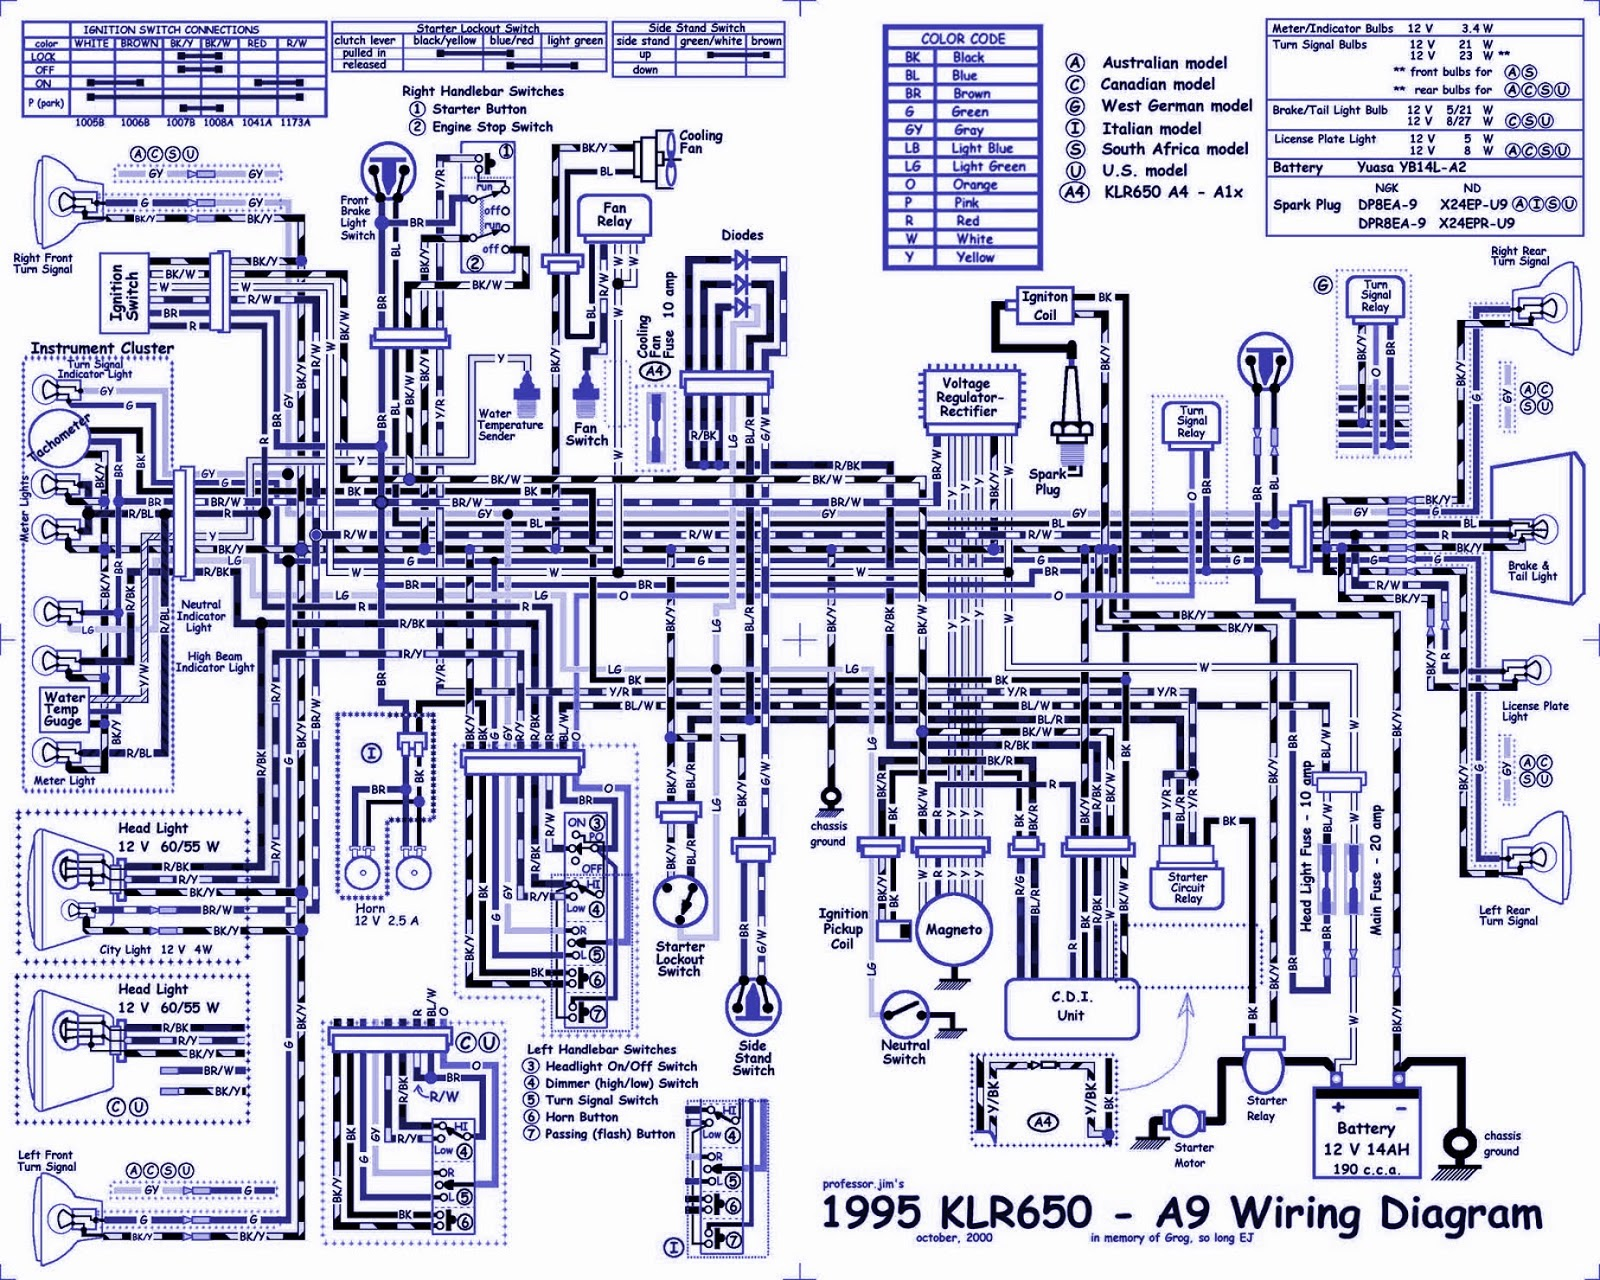 Chevrolet Monte Carlo 1974 Electrical Wiring Diagram